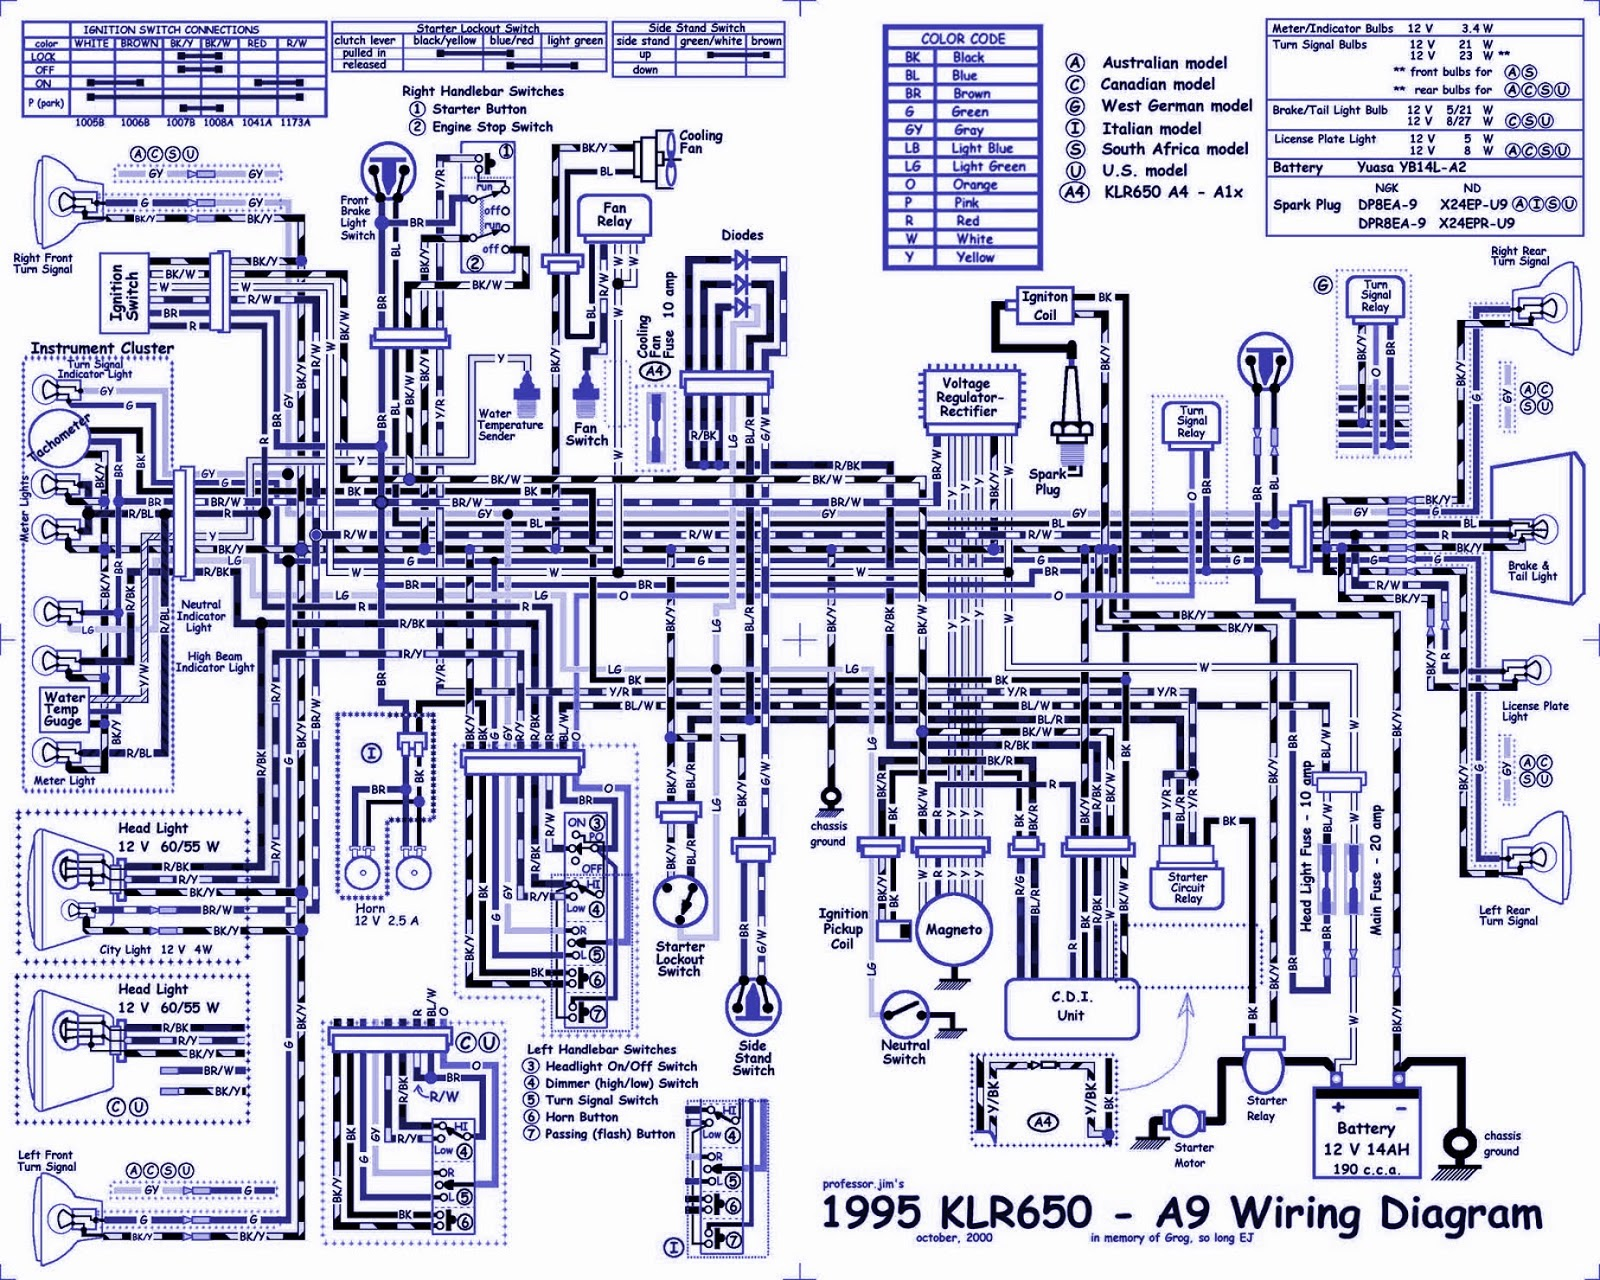 Chevrolet Monte Carlo 1974 Electrical Wiring Diagram